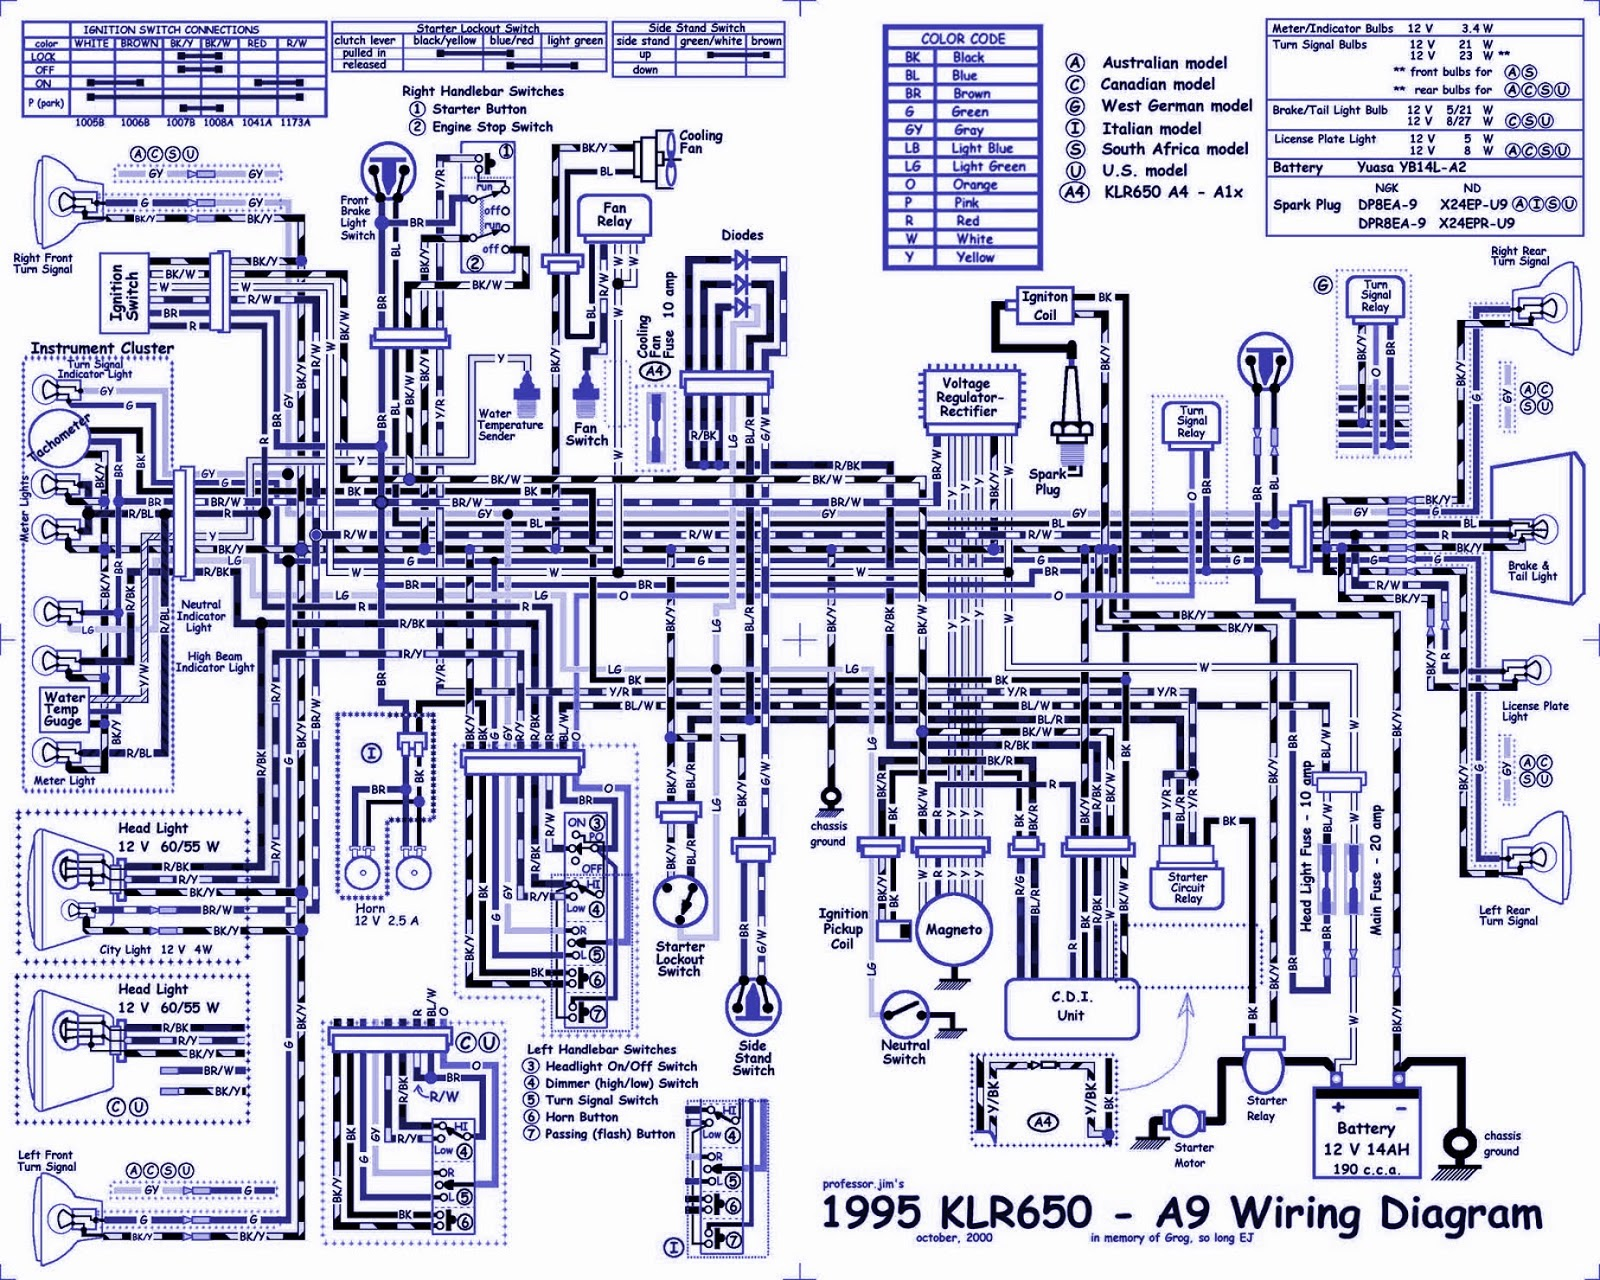 Chevrolet Monte Carlo 1974 Electrical Wiring Diagram